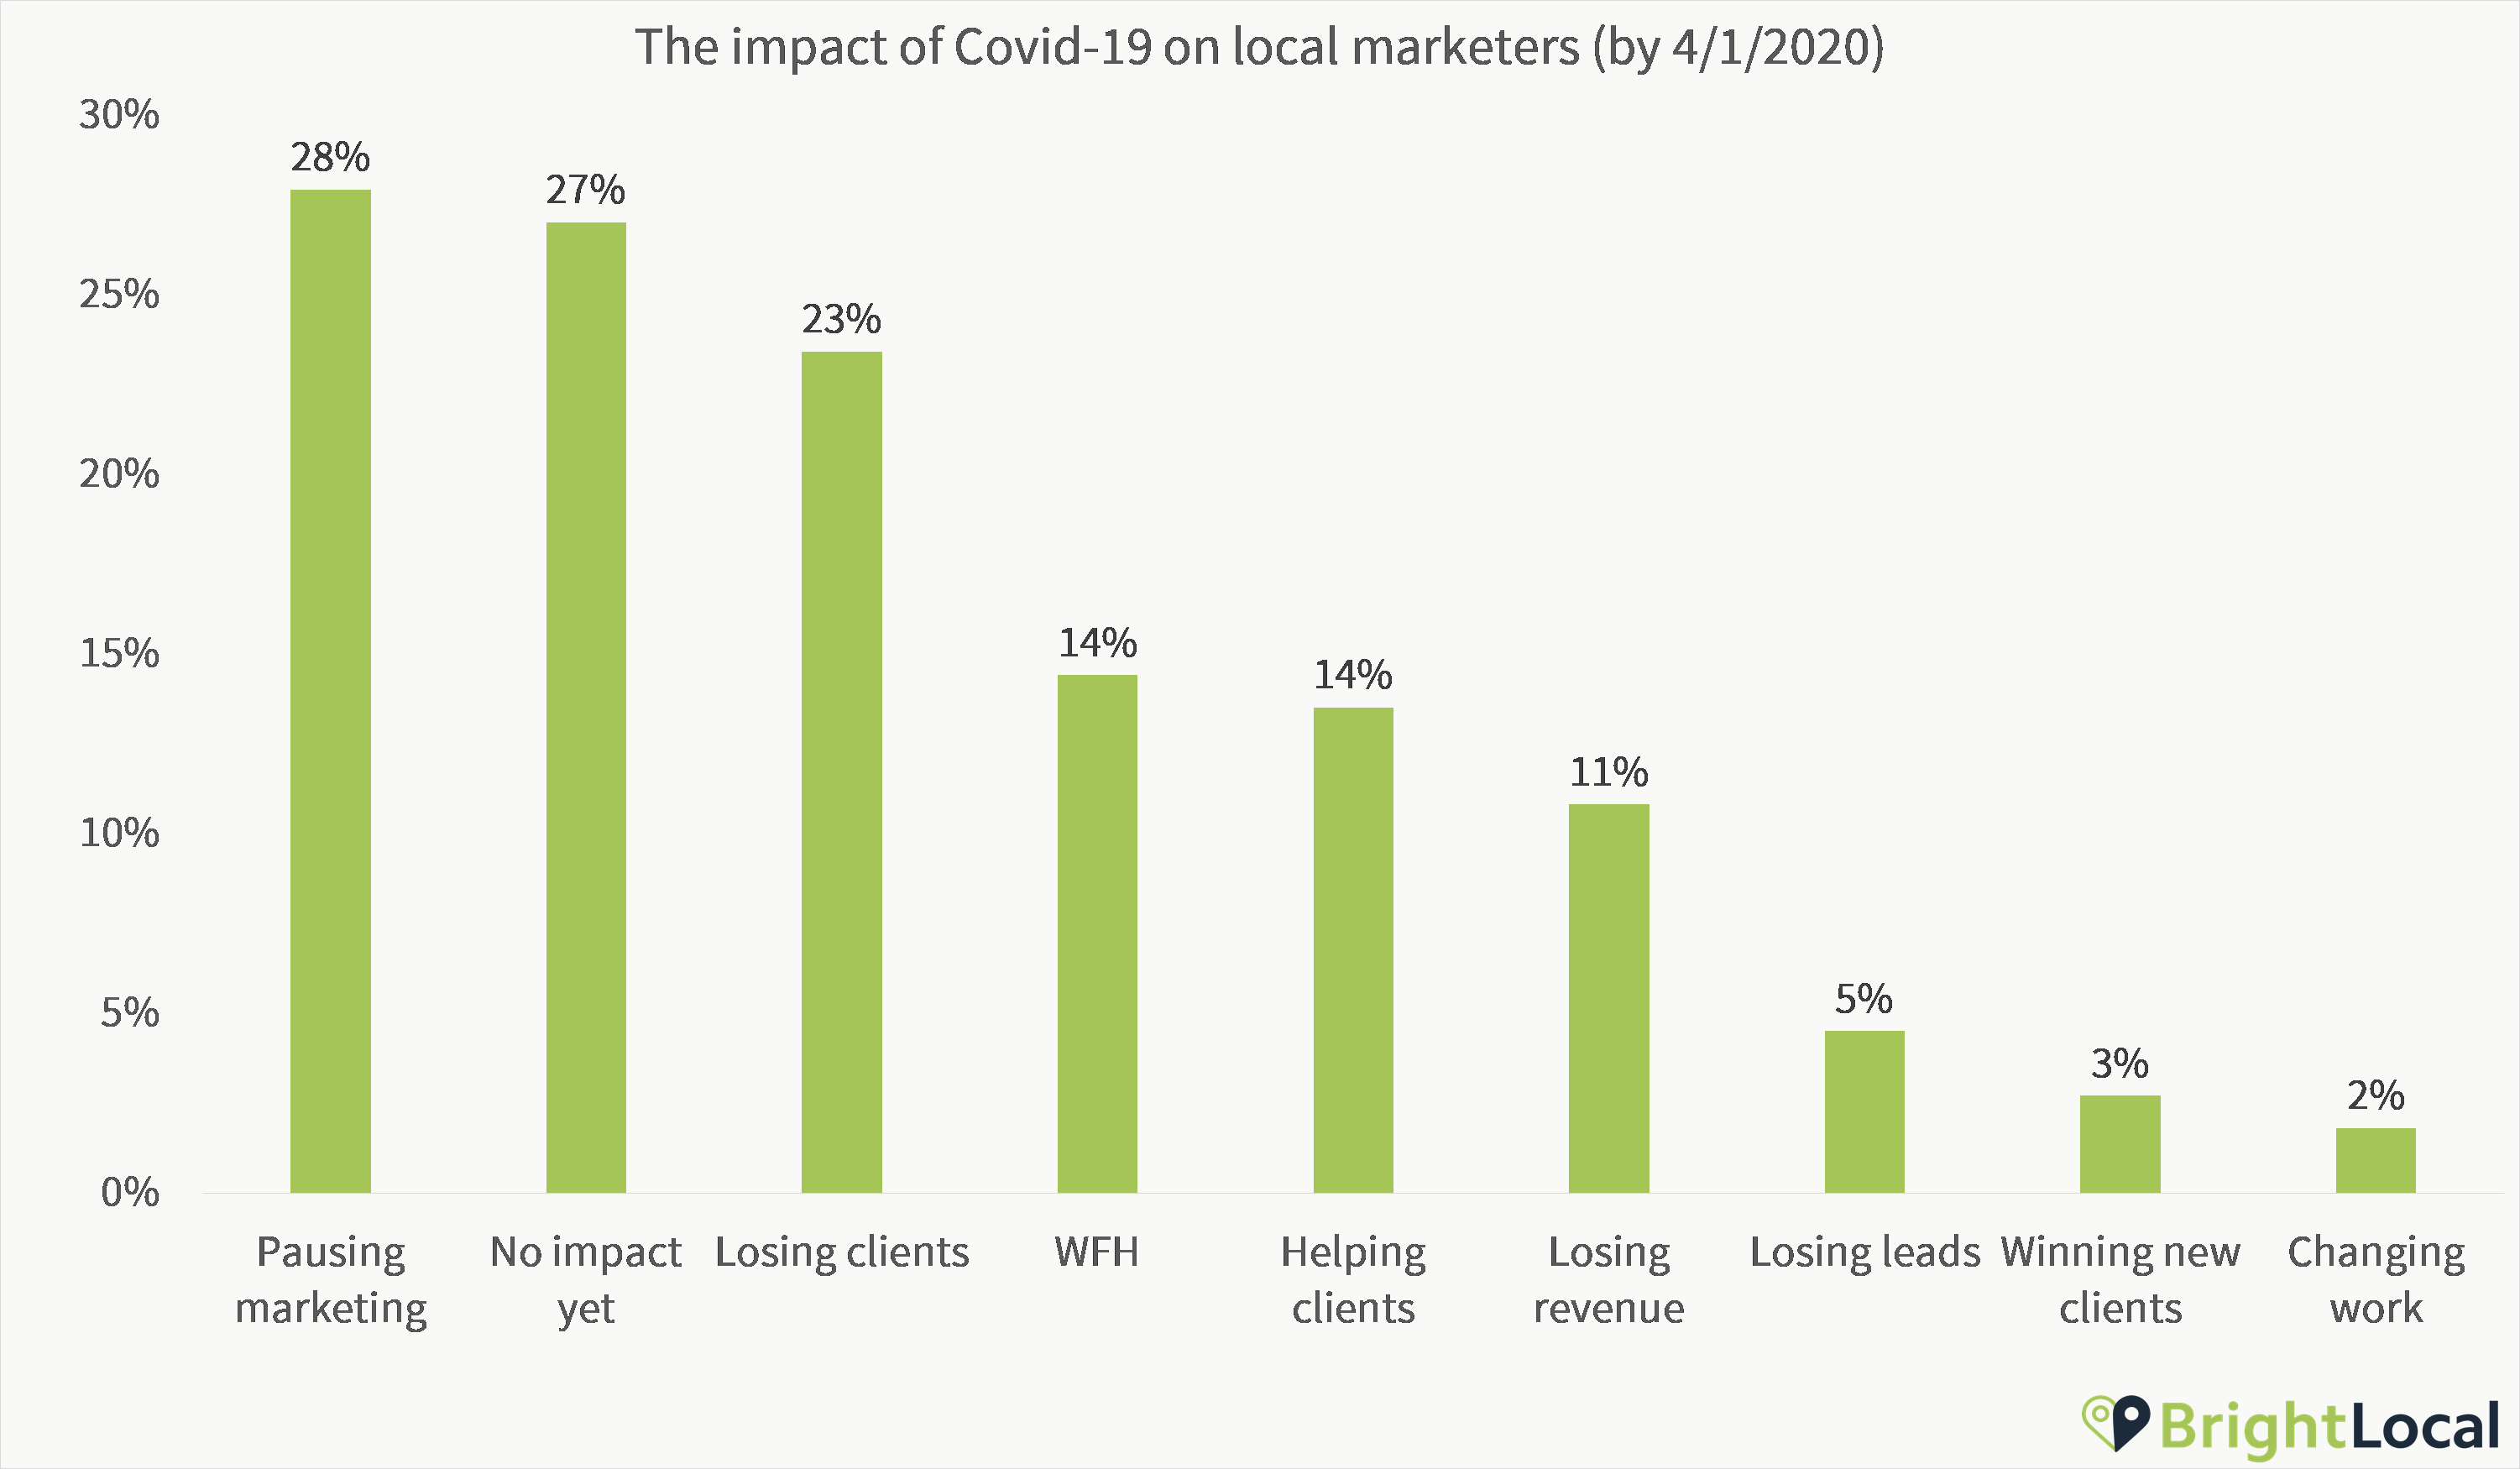 The impact of Covid-19 on local marketers